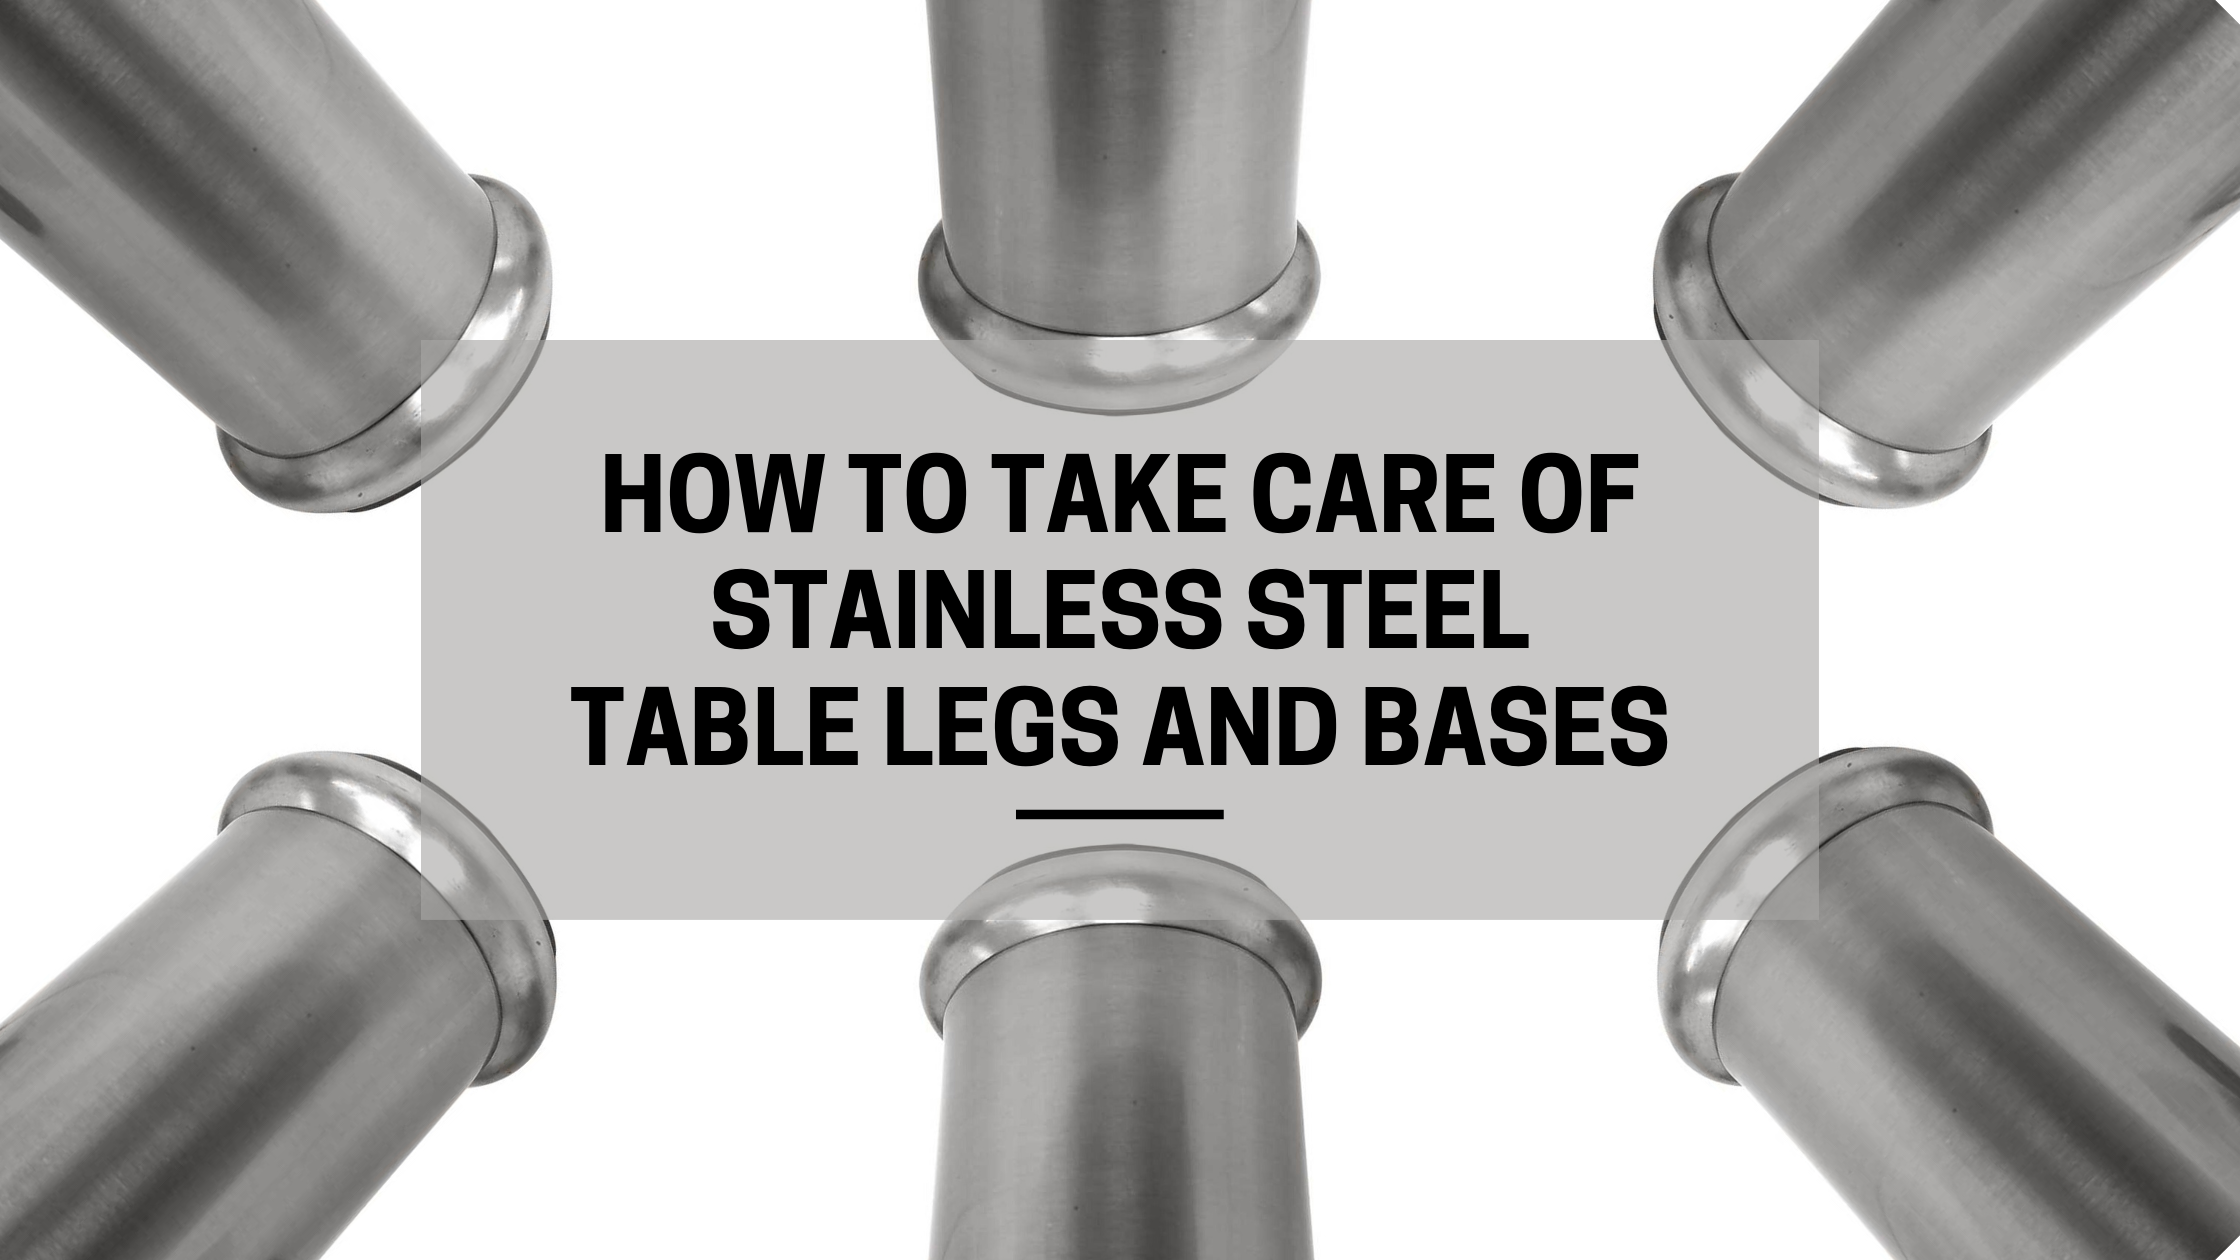 How To Take Care Of Stainless Steel Table Legs And Bases Tablelegsonline